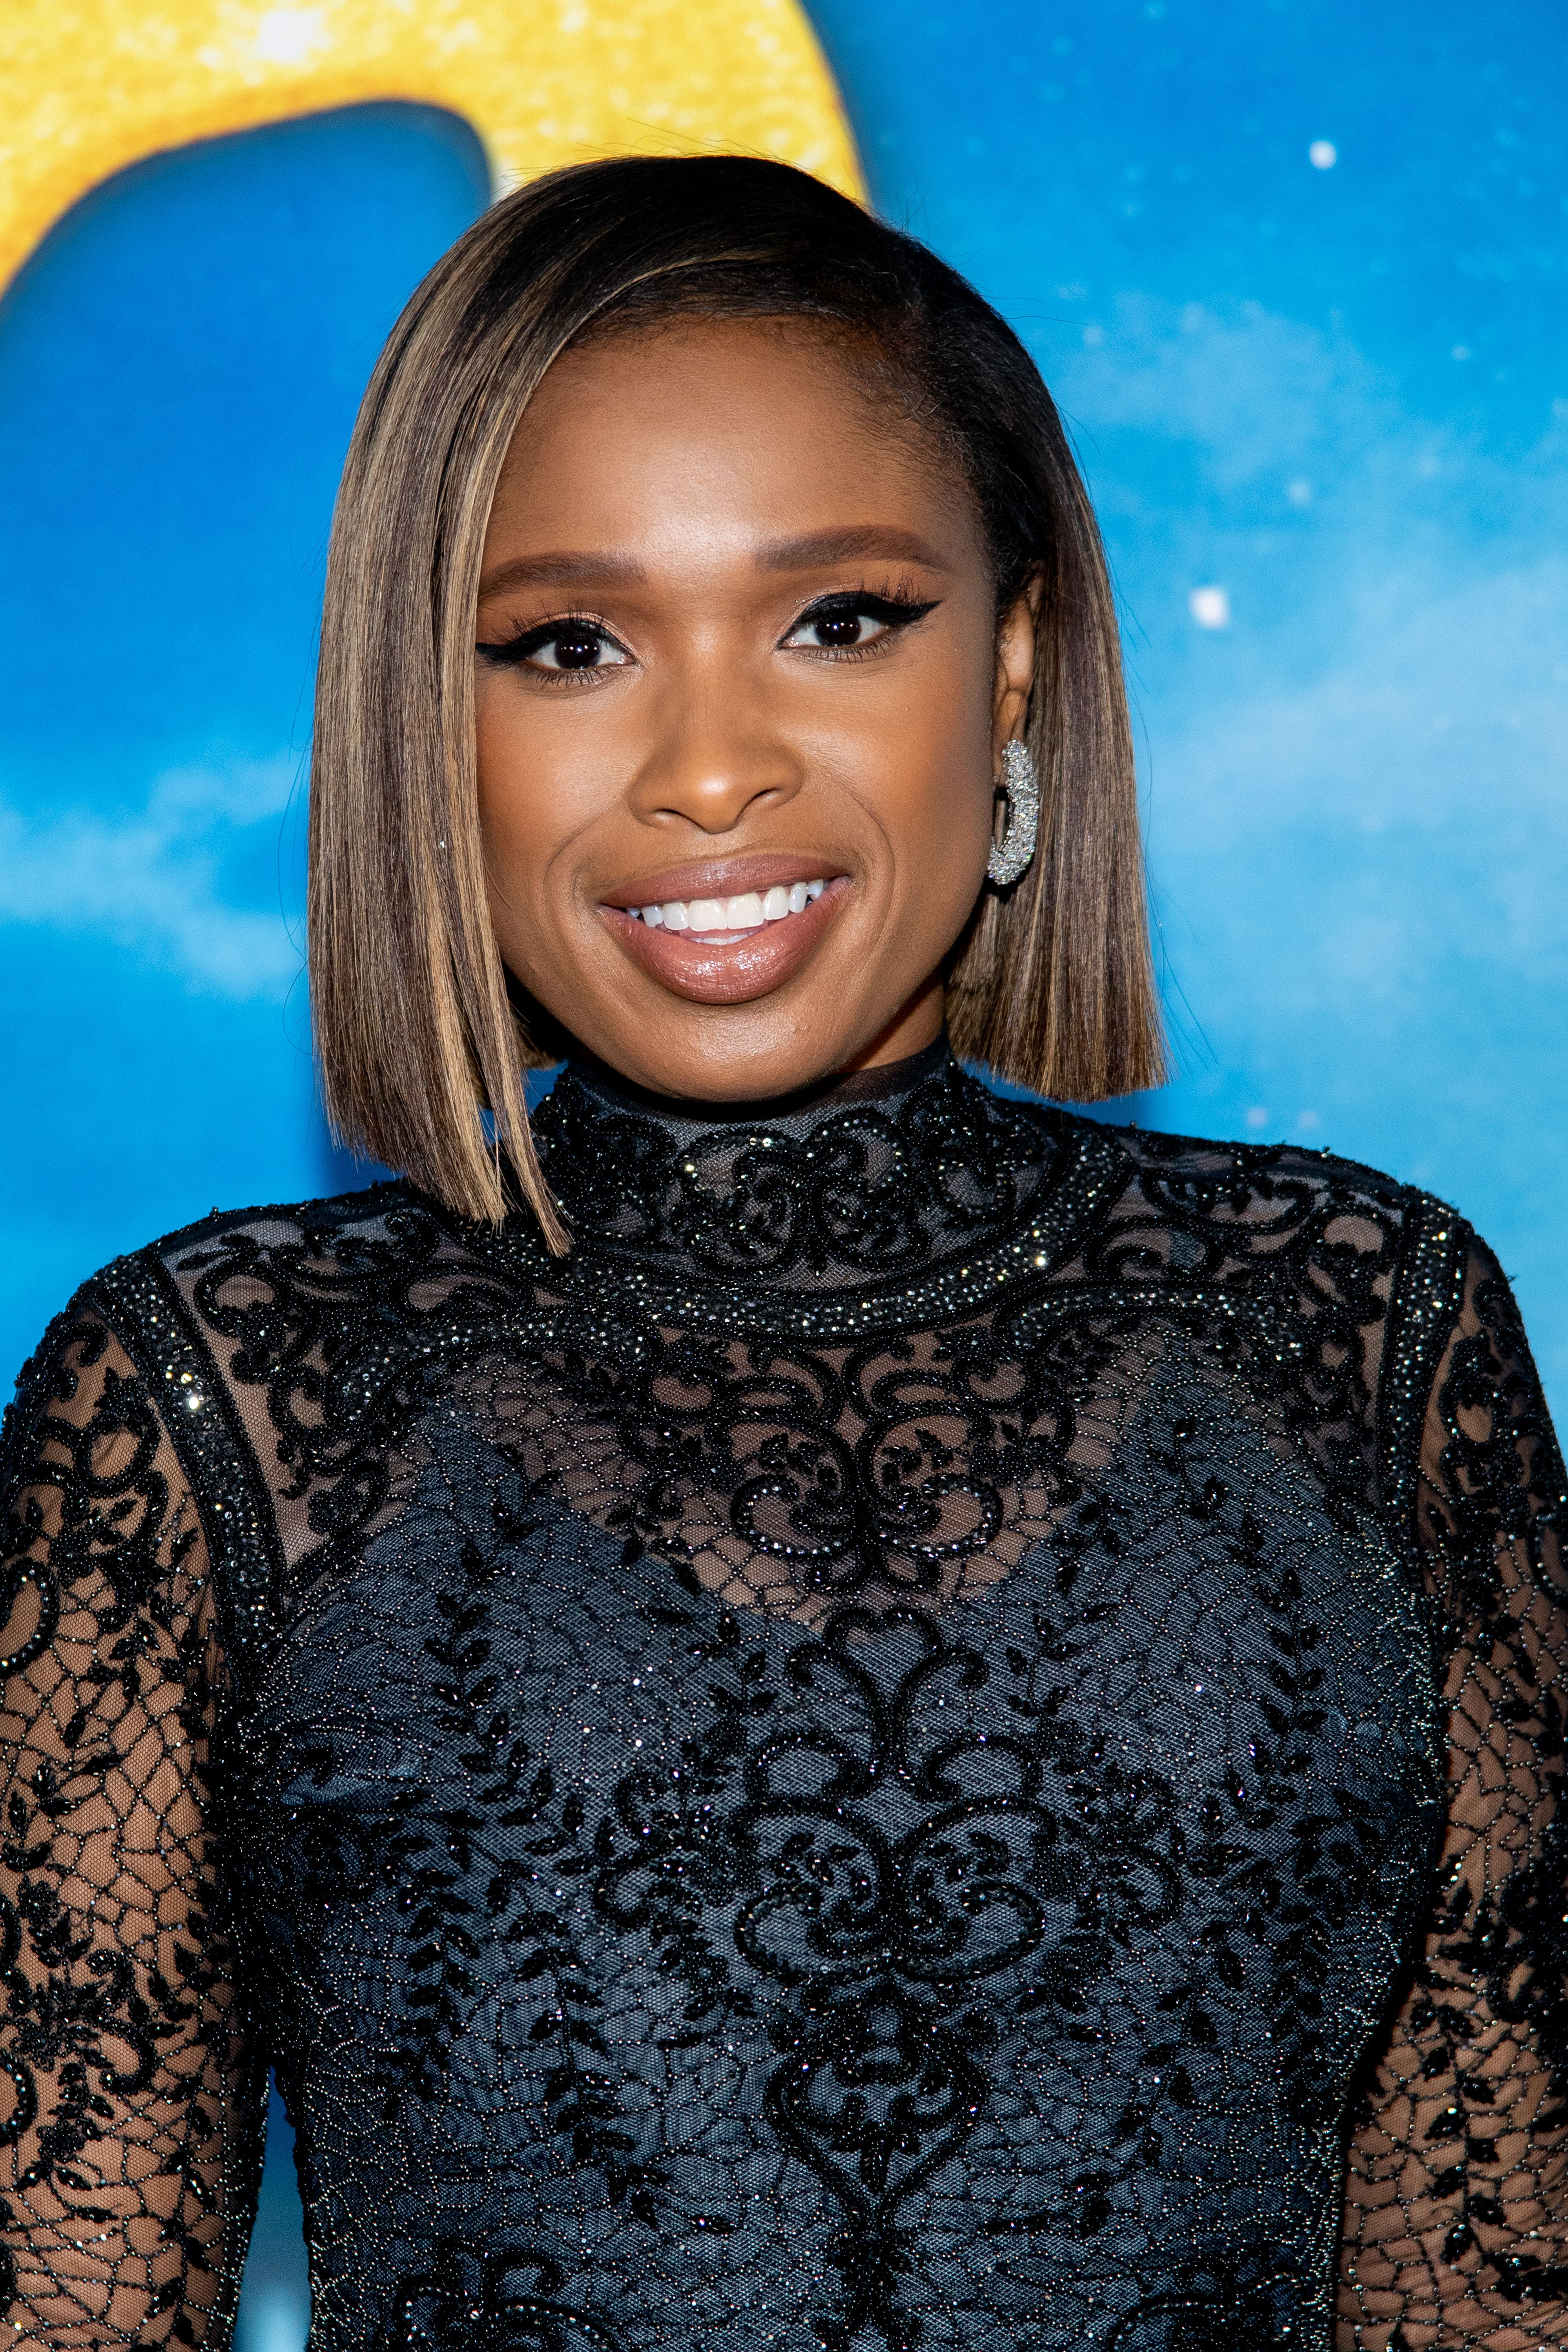 """Jennifer Hudson at the """"Cats"""" world premiere at Alice Tully Hall, Lincoln Center on December 16, 2019 in New York City 